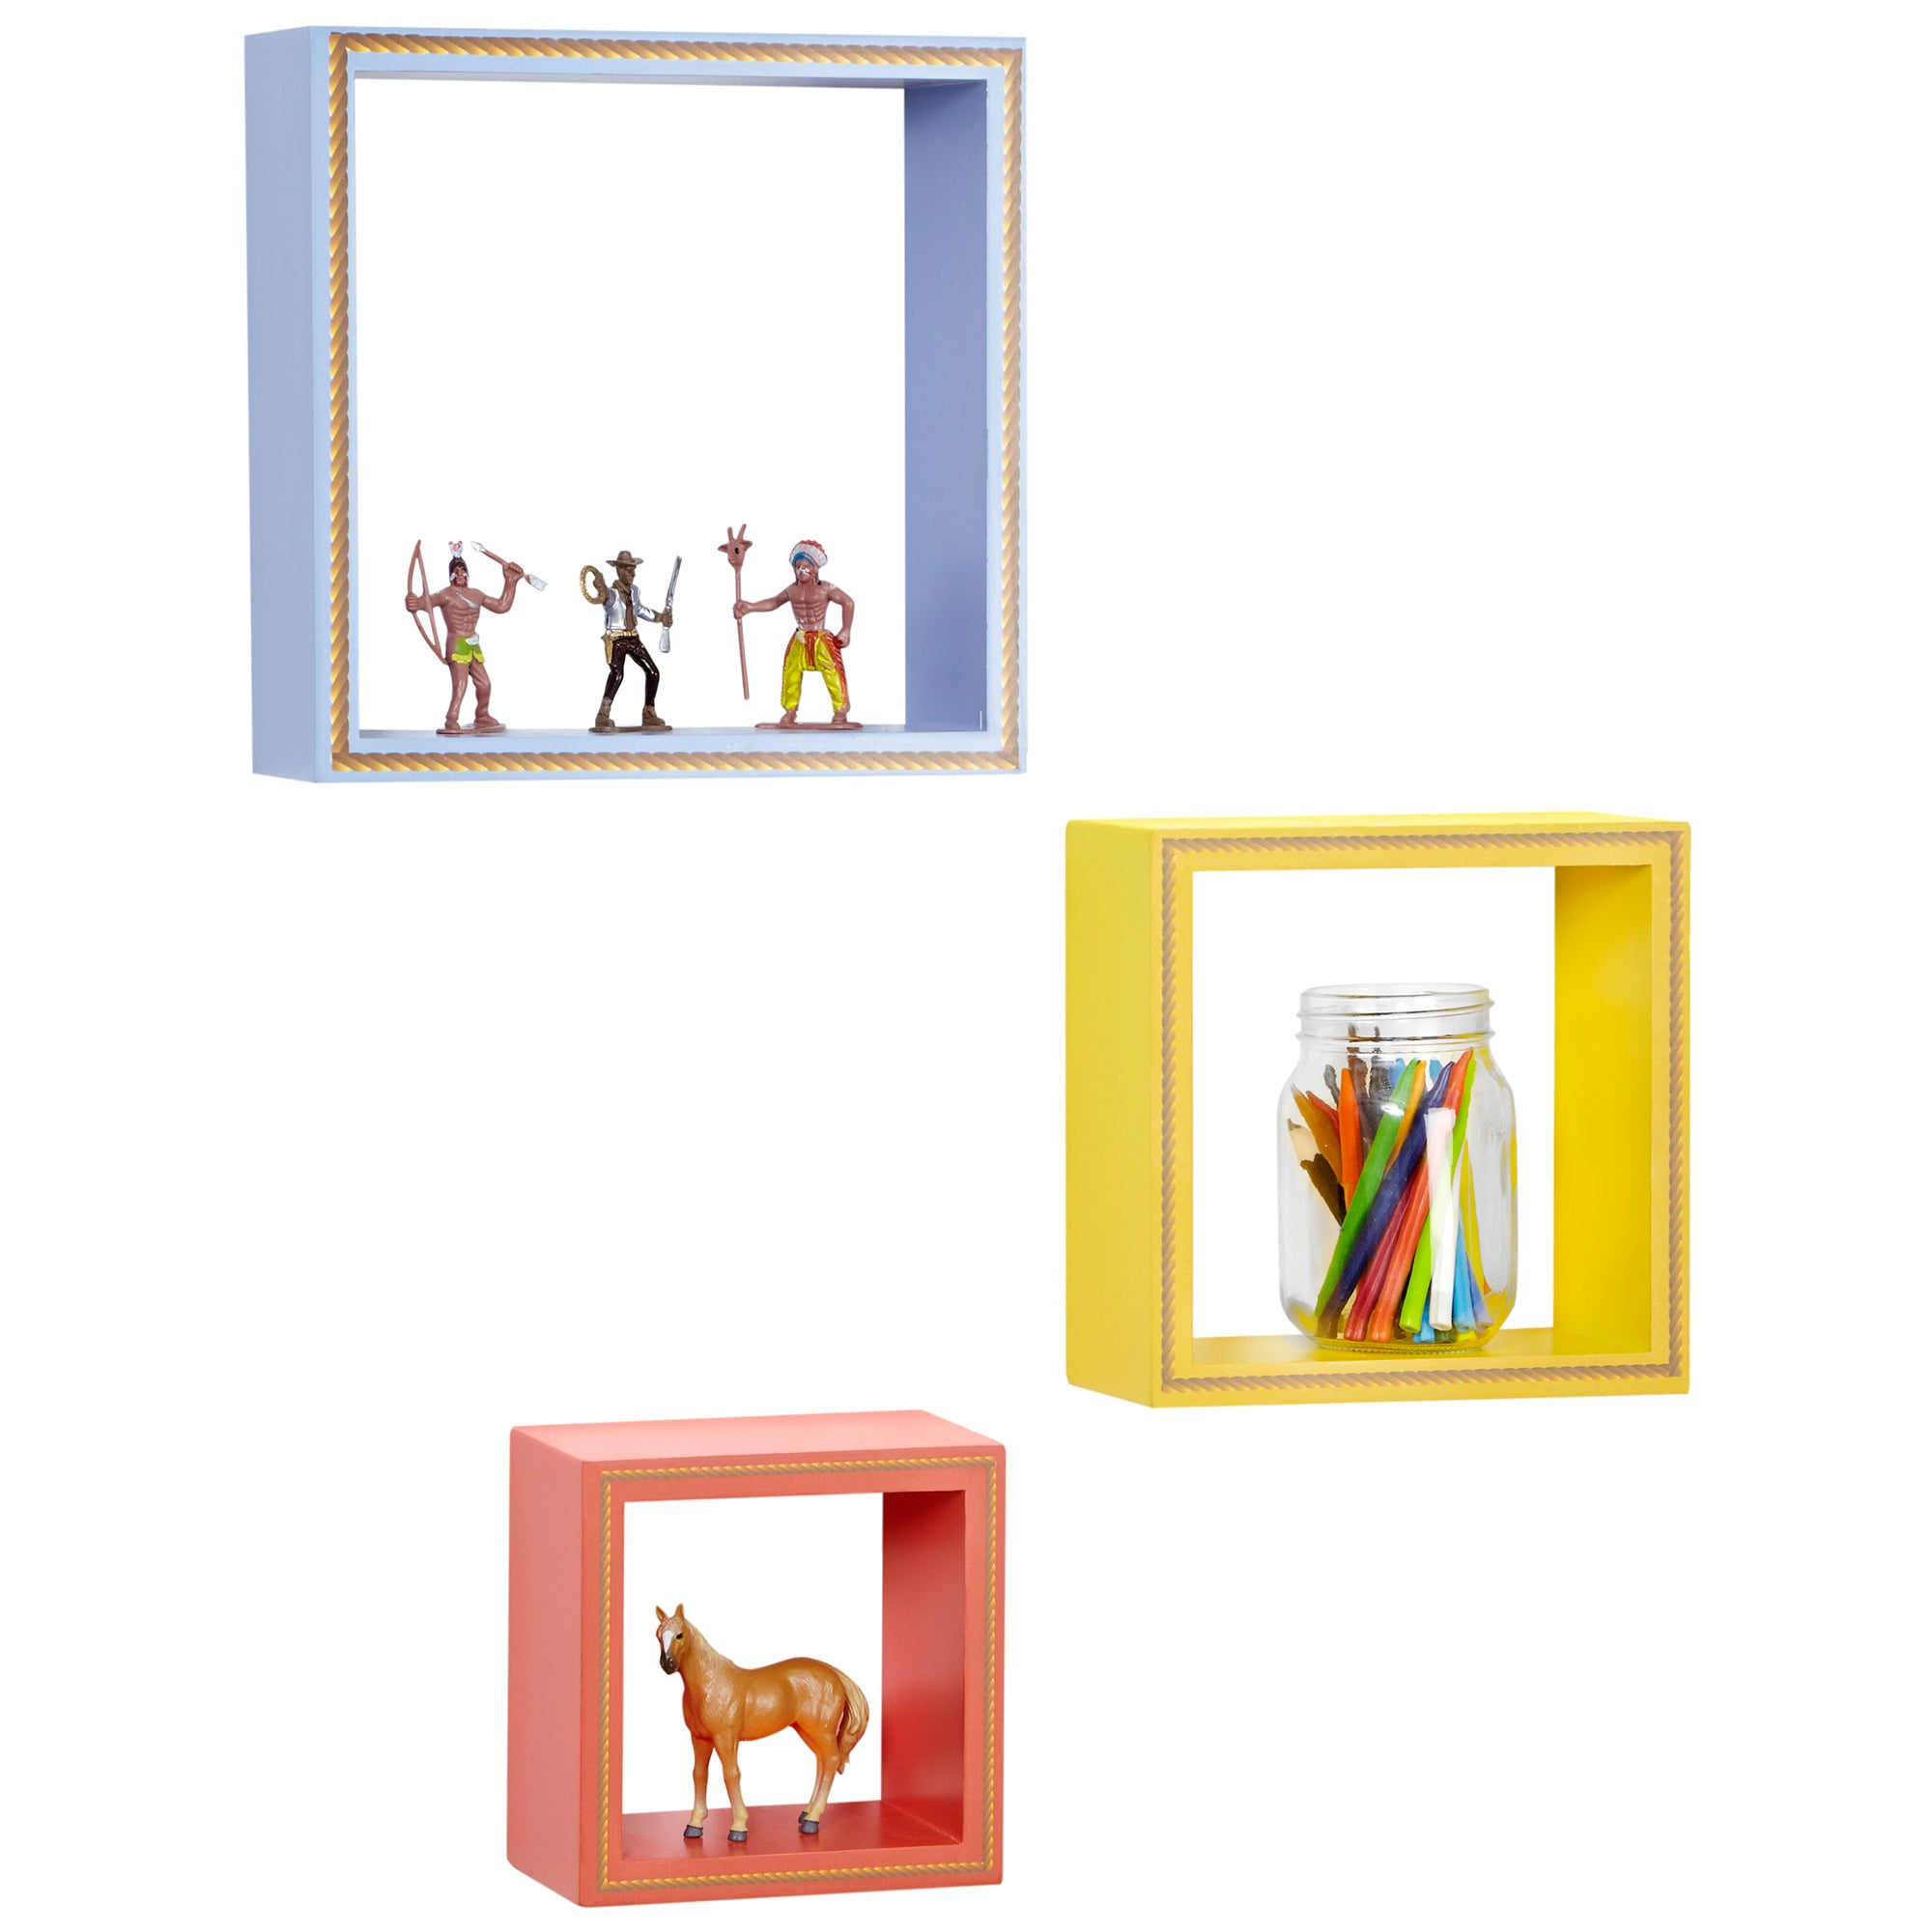 Kids Cowboys and Indians Collection Box Shelves